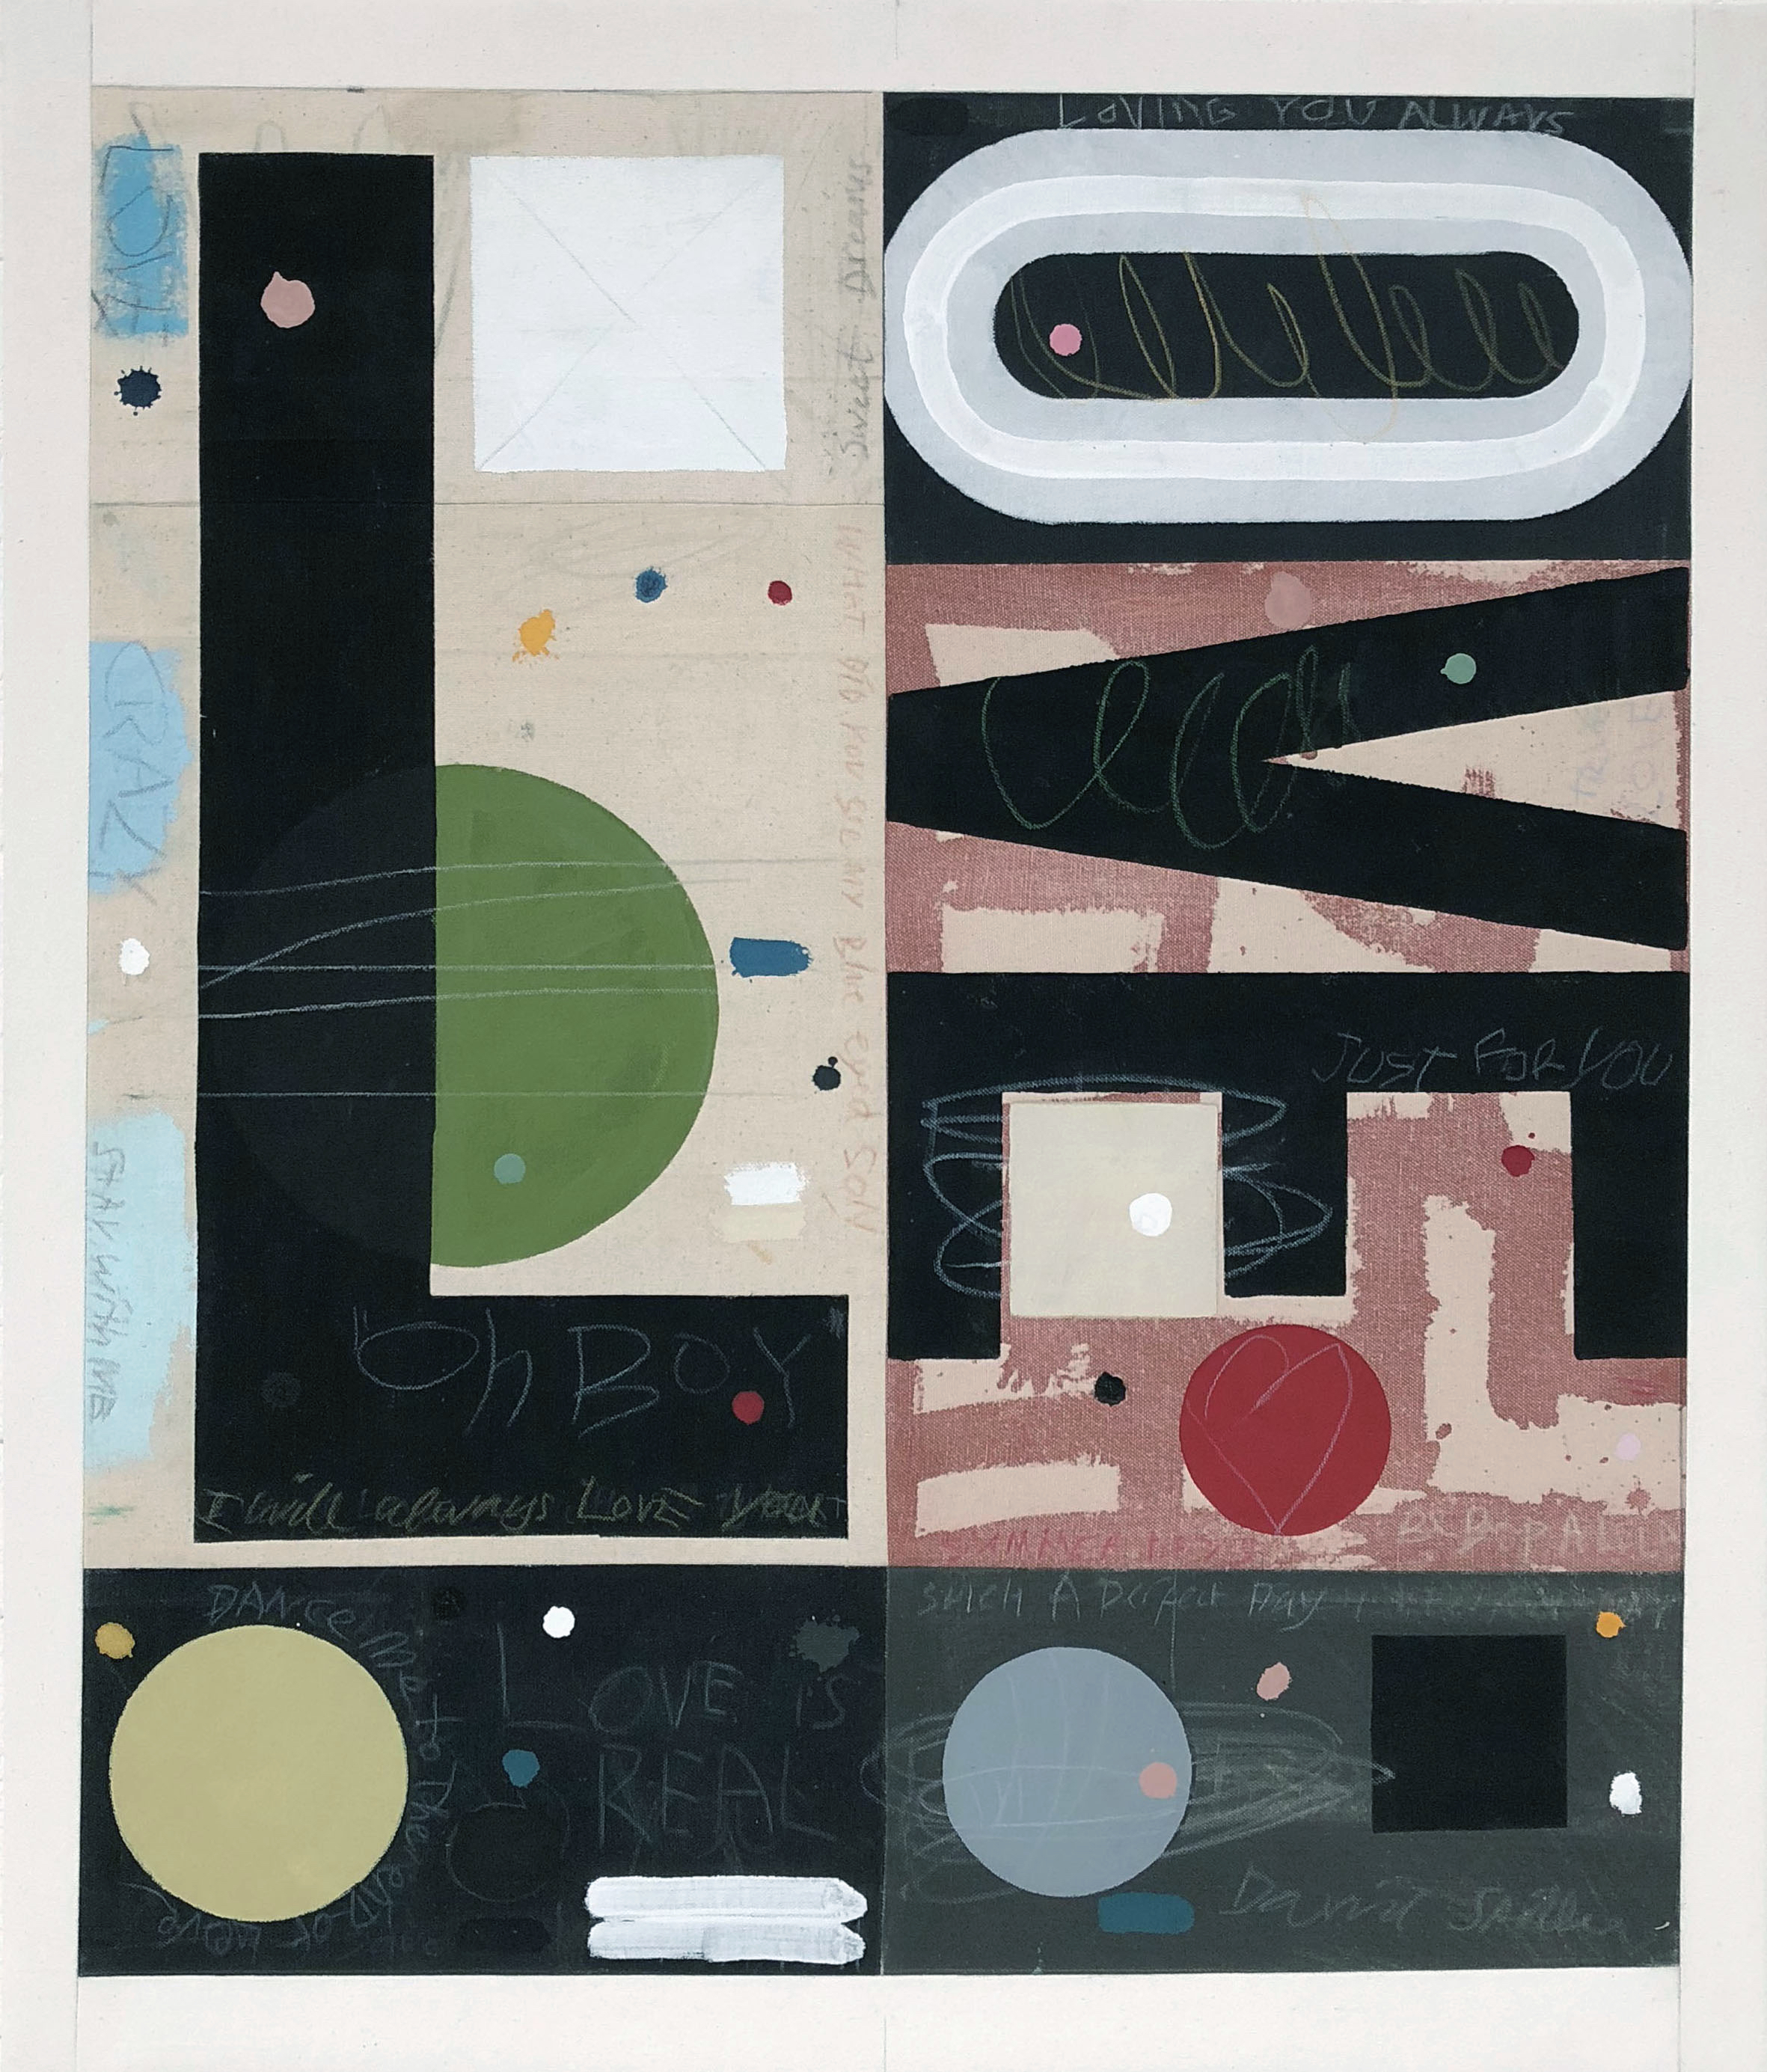 dance me to the end of love by david spiller on stitched canvas panels